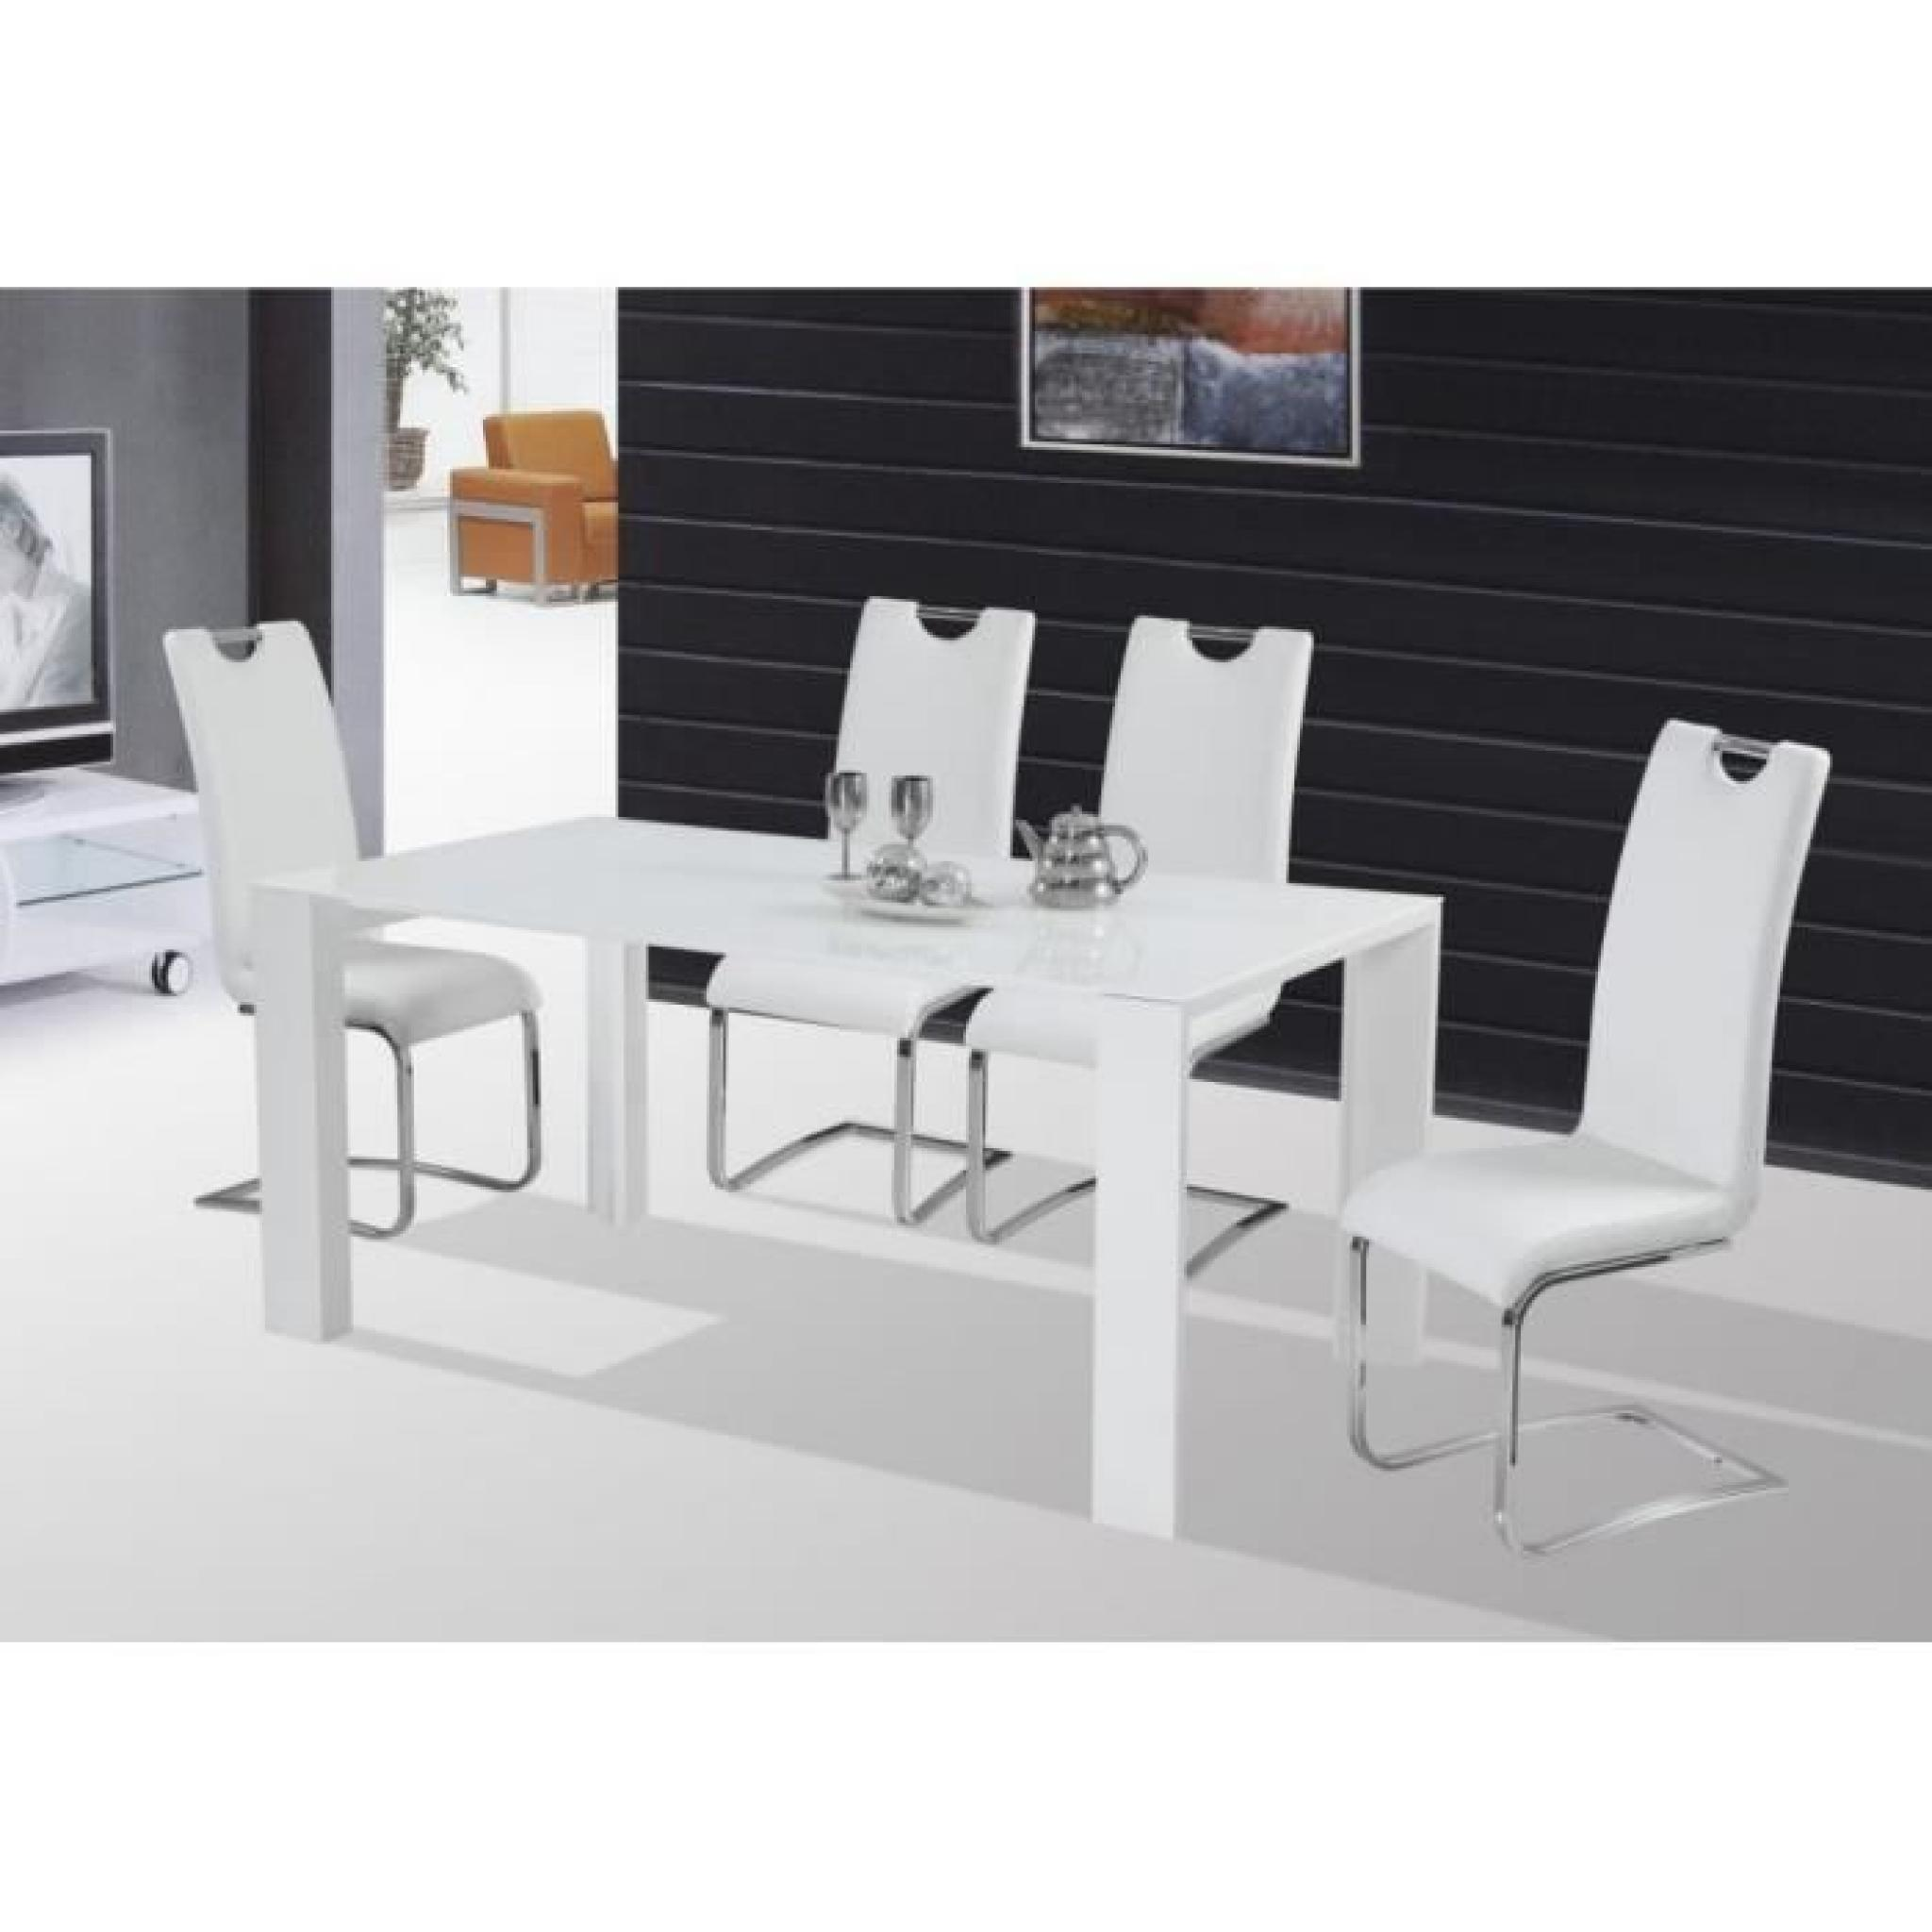 table de salle manger jonas blanc laqu haute brillance lxlxh 165 90 76 cm achat vente. Black Bedroom Furniture Sets. Home Design Ideas